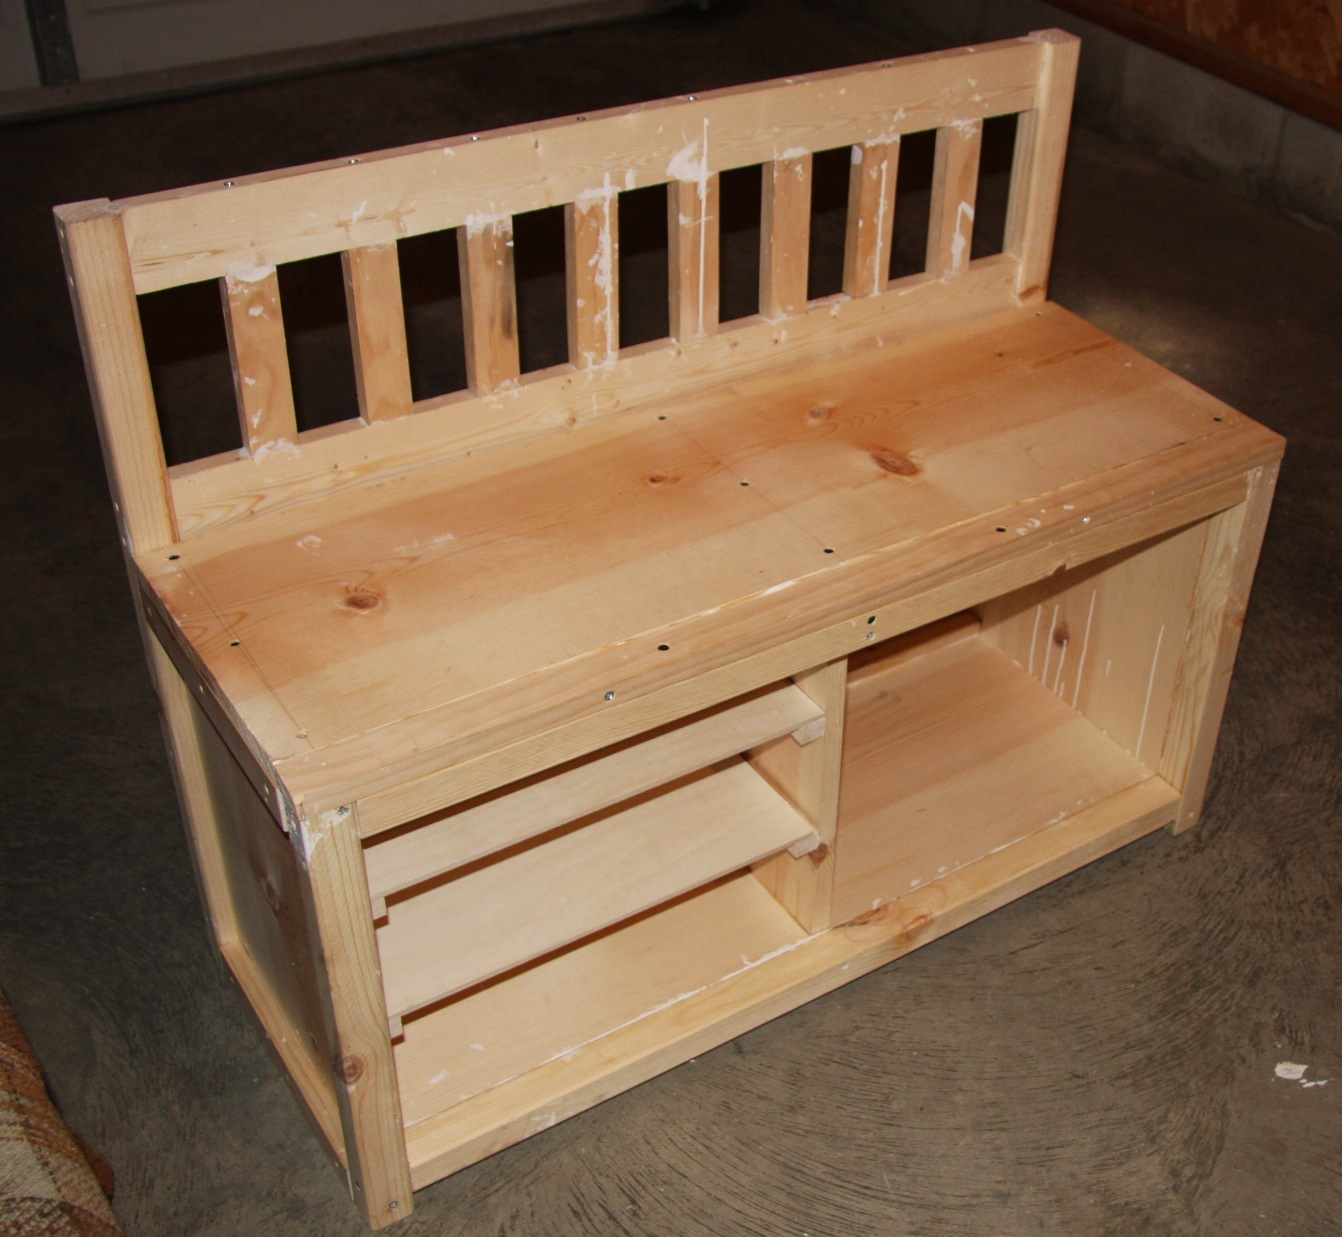 wood shoe storage bench plans | woodproject